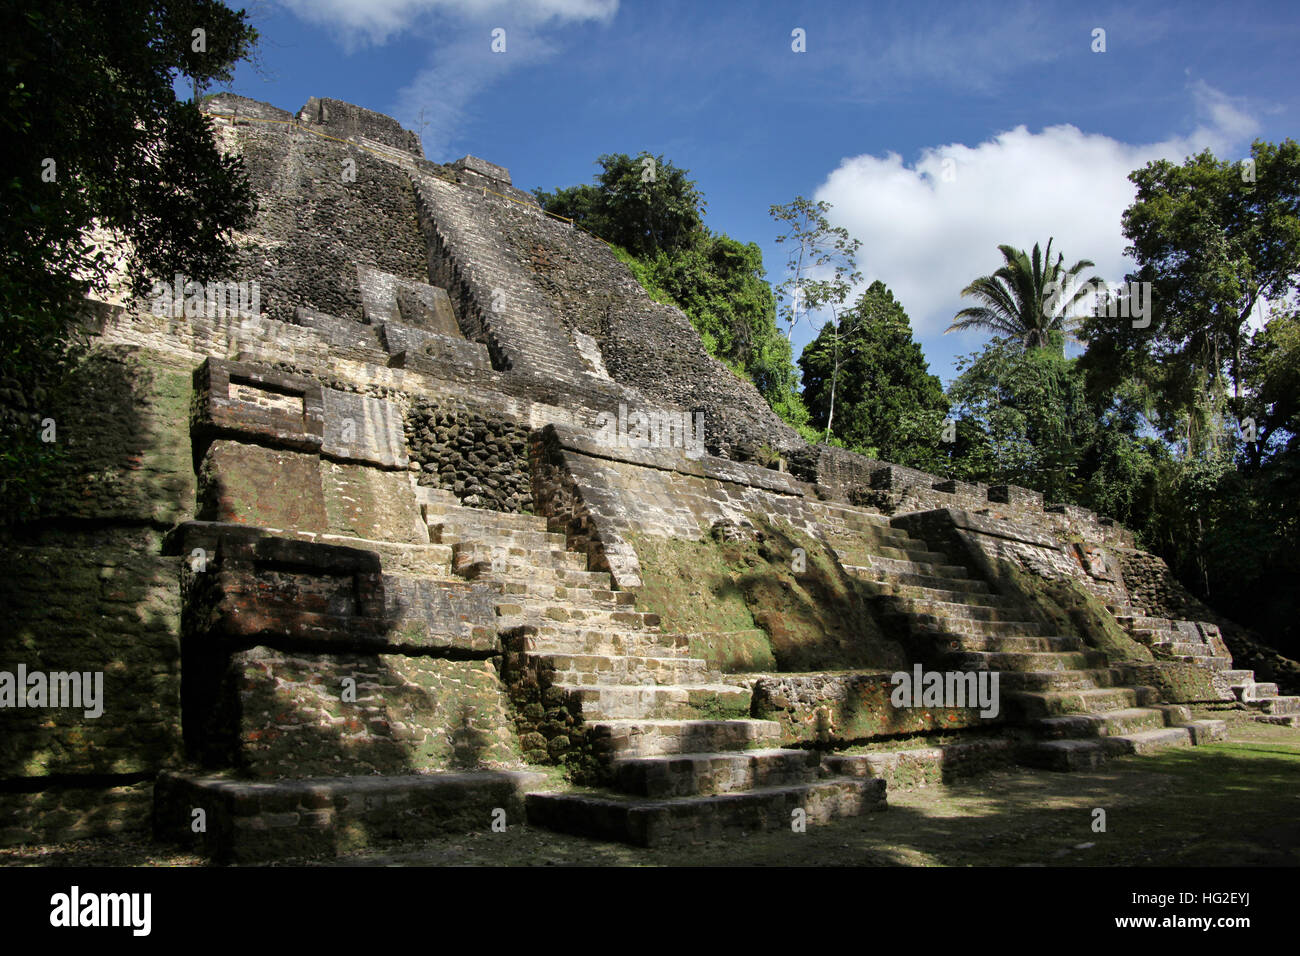 The High Temple of Lamanai, is a Mesoamerican archaeological site, and was once a major city of the Maya civilization, - Stock Image